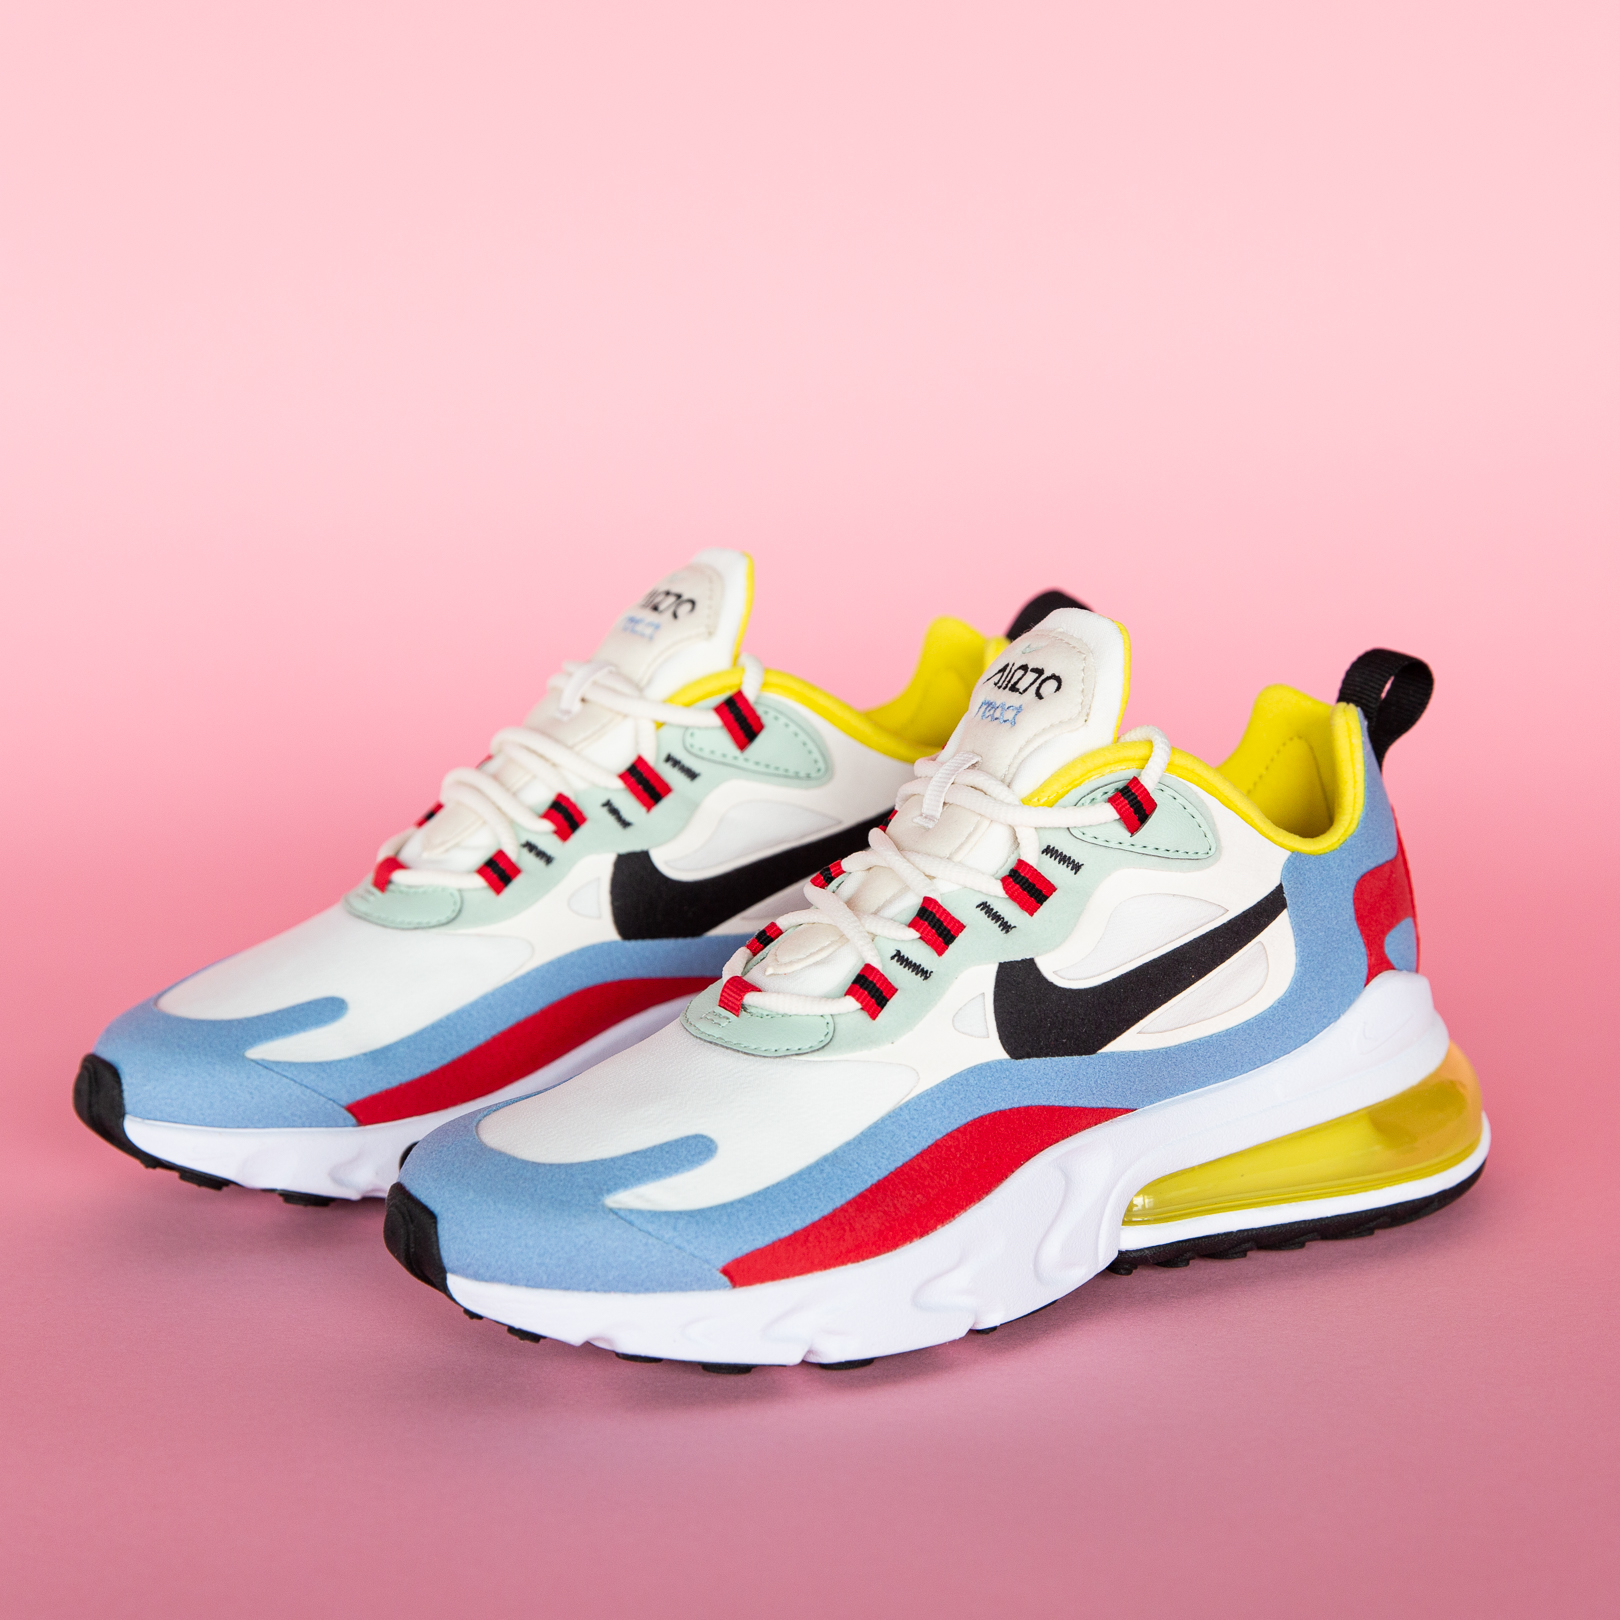 Nike Air Max 270 React First Look // ONE37pm